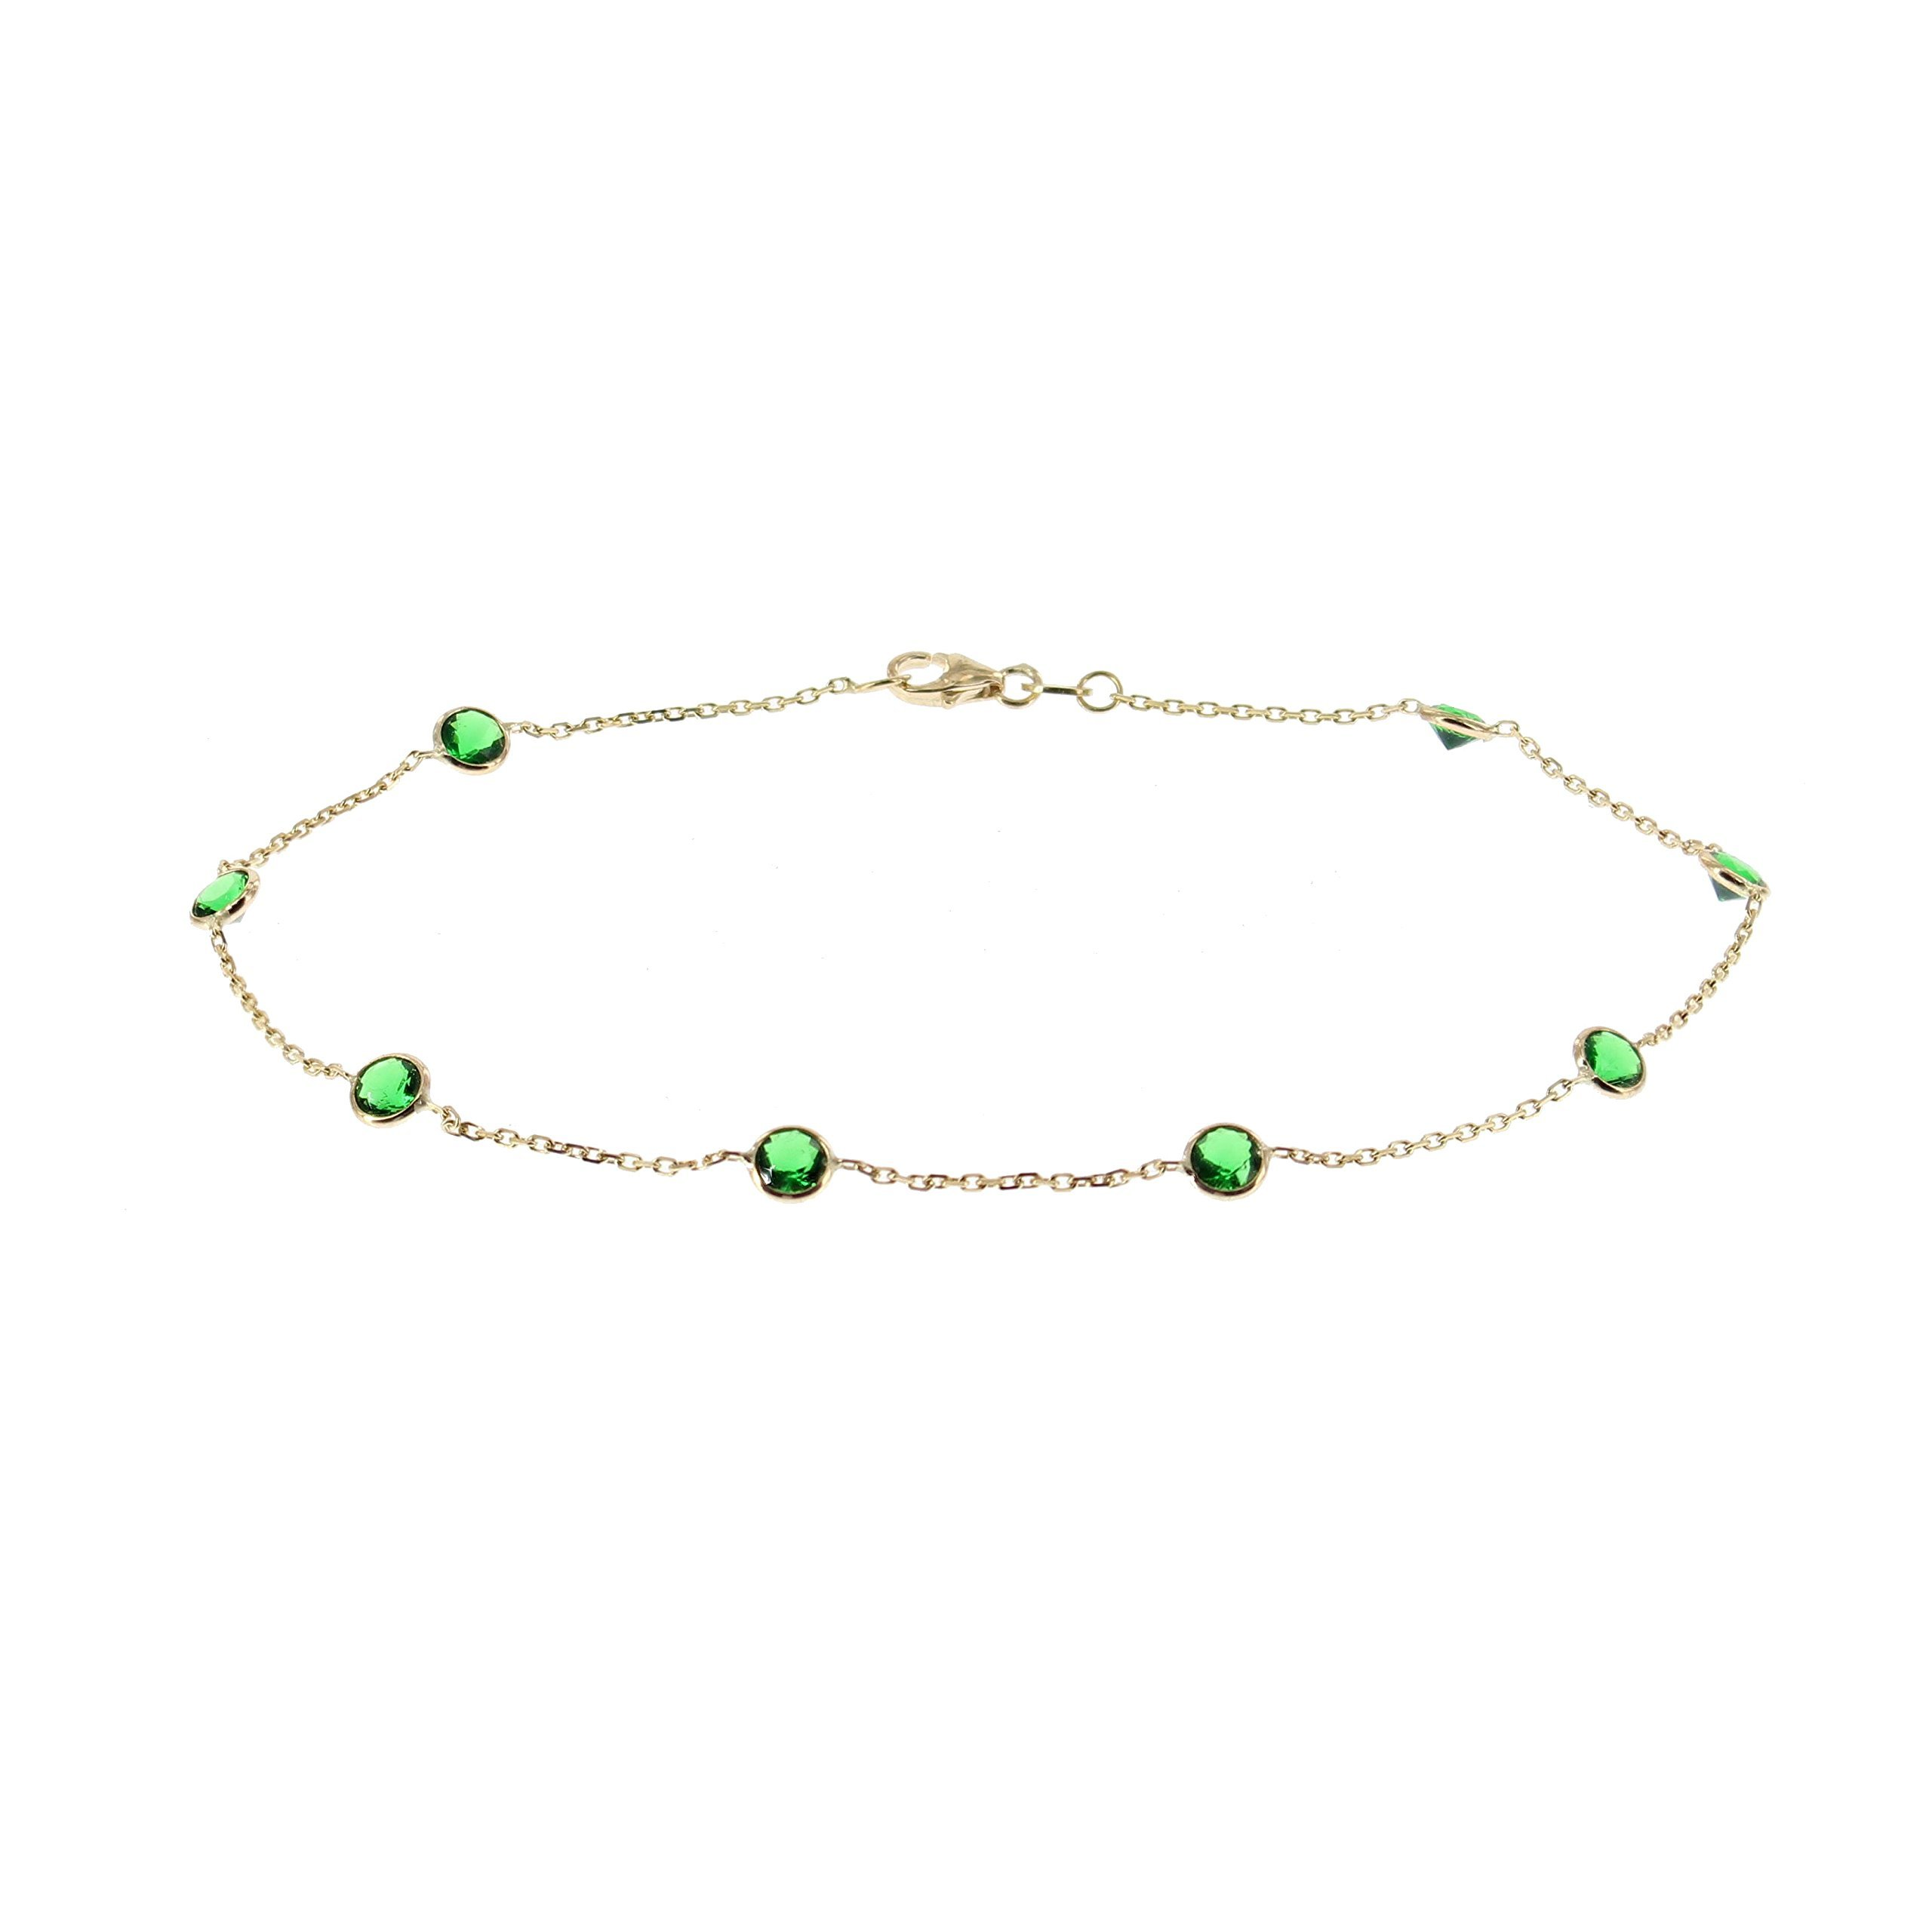 14k Yellow Gold Ankle Bracelet With Green Cubic Zirconia (9 - 11 inches)